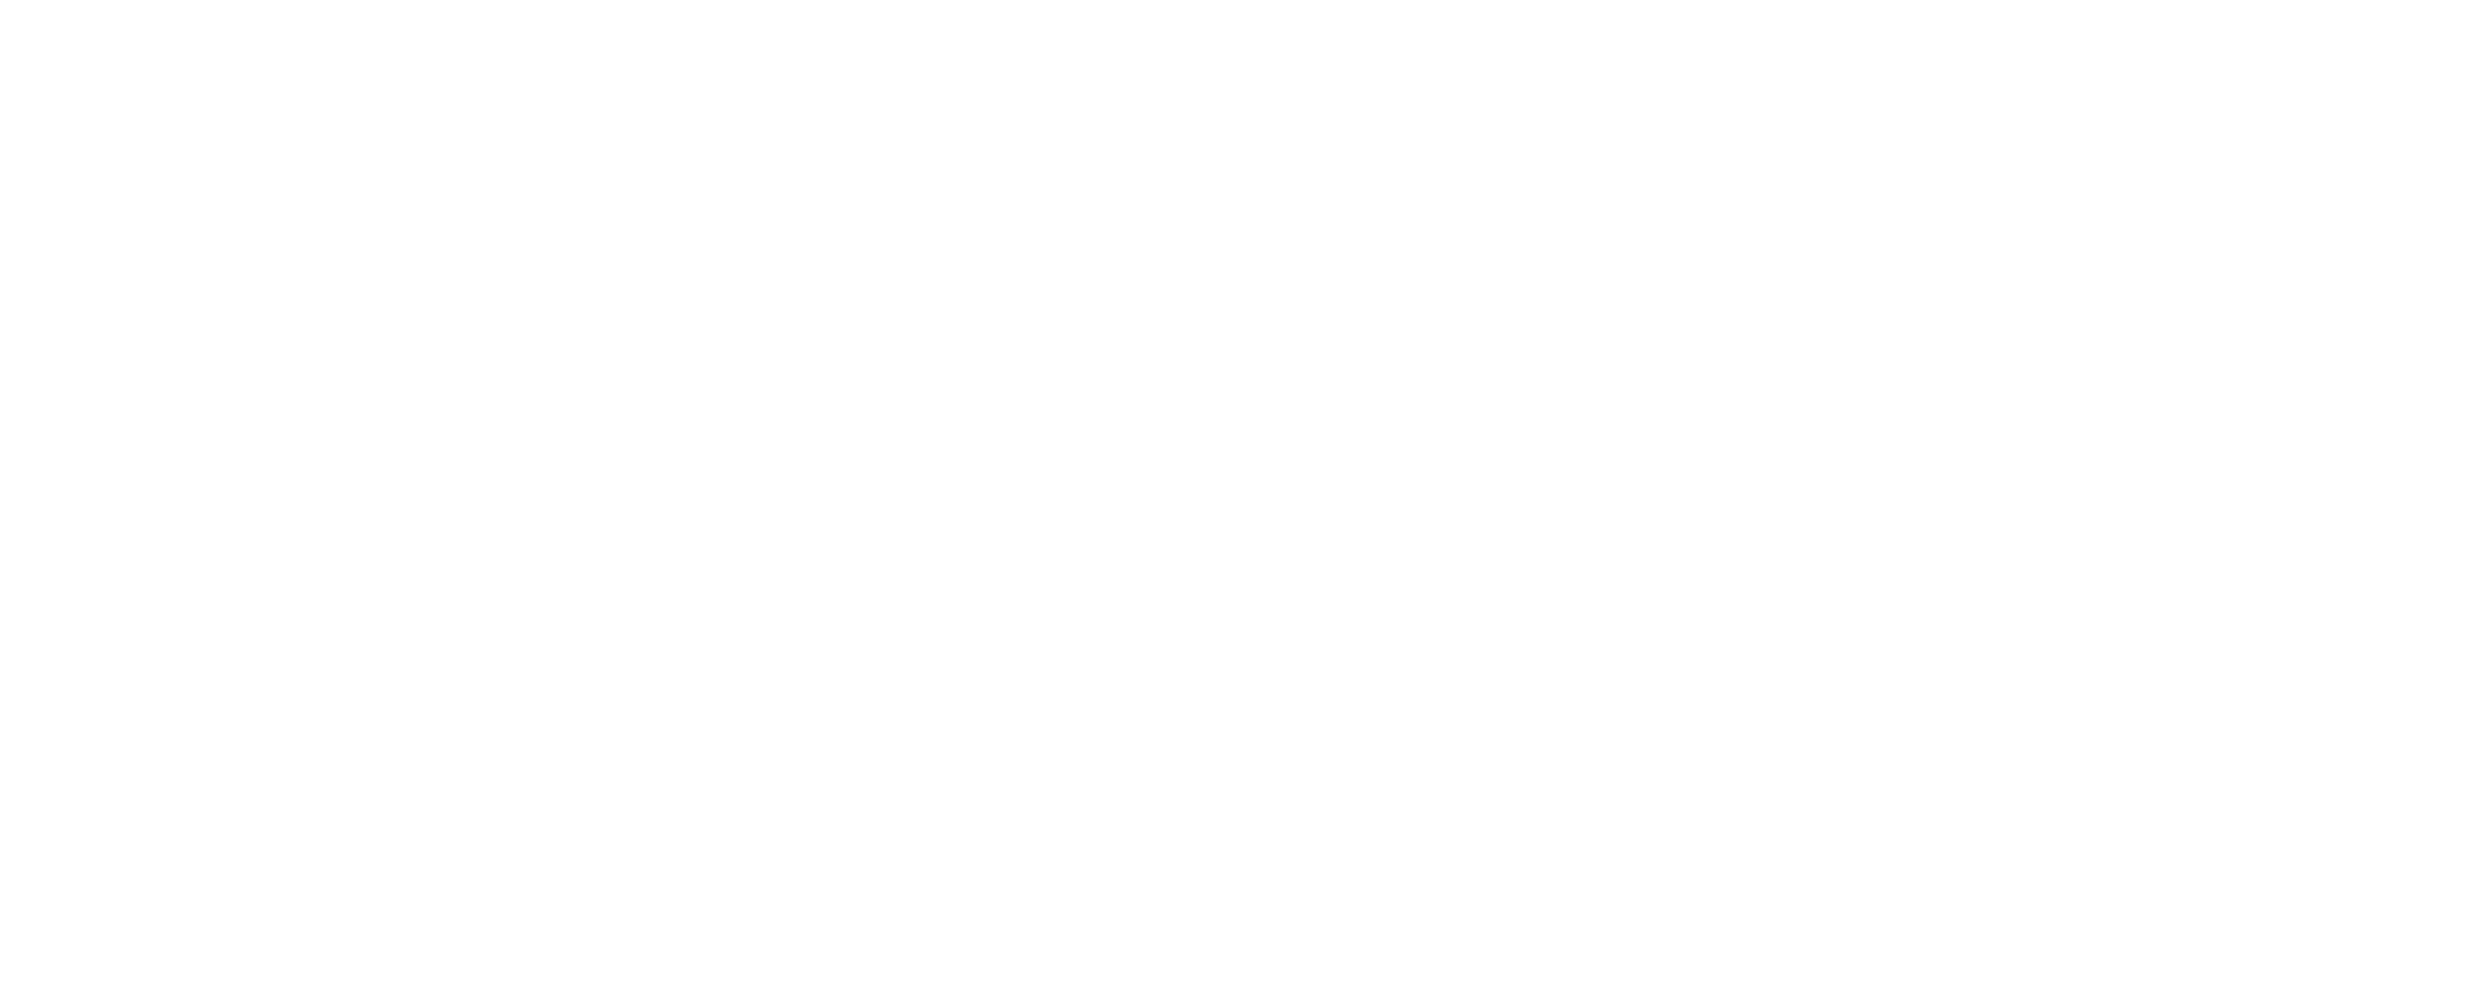 Olivers Contracts Ltd.